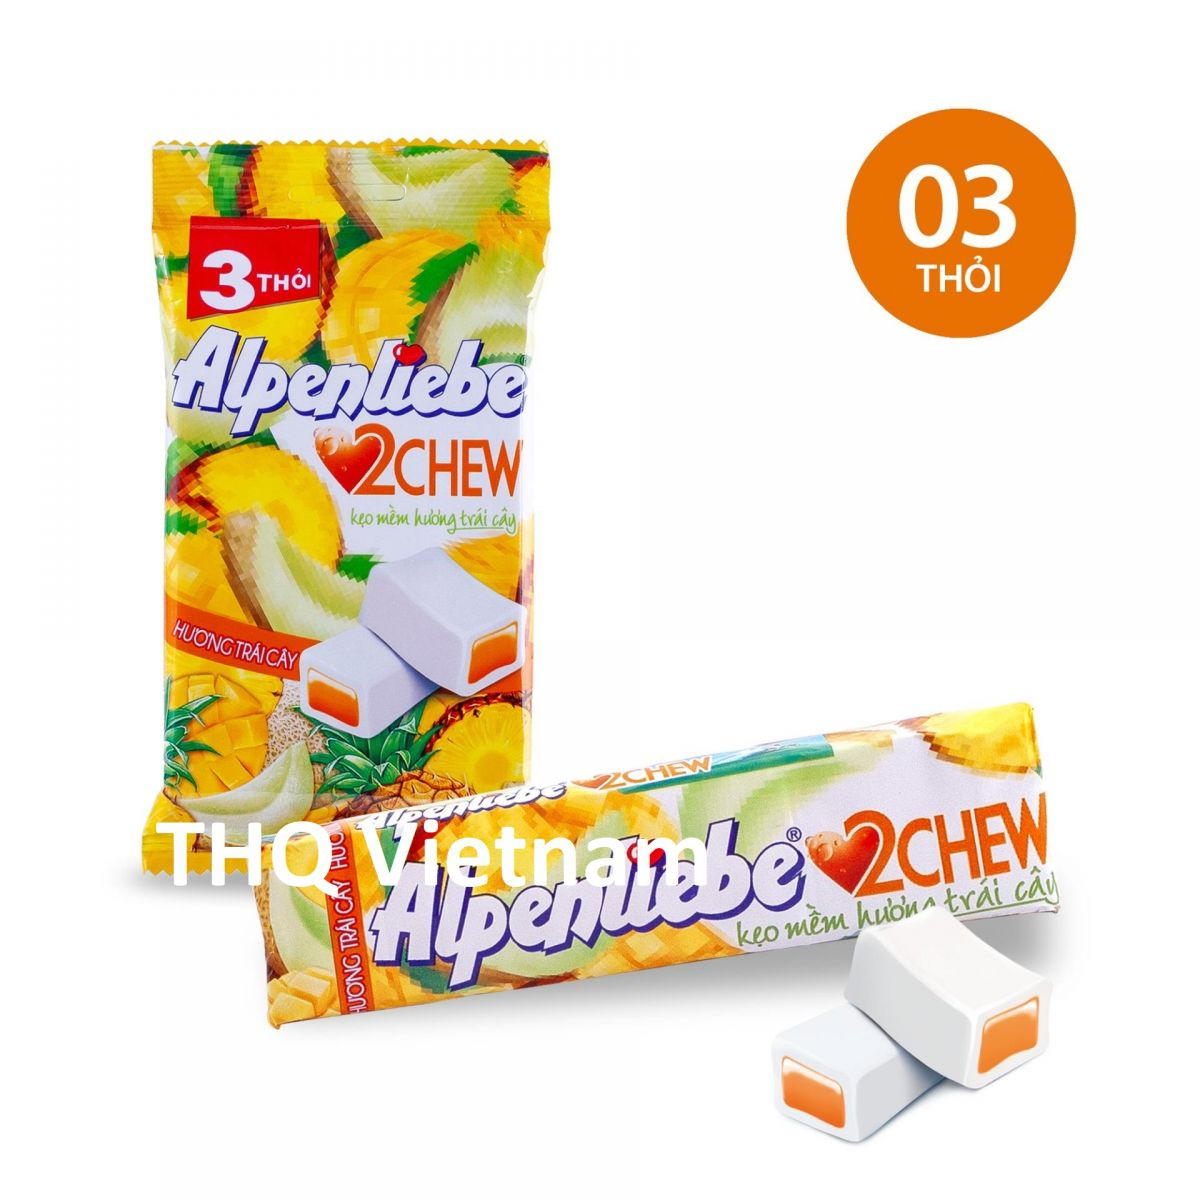 Alpenliebe 2 Chew Soft Fruit Candy 24.5 gram x 3 rolls